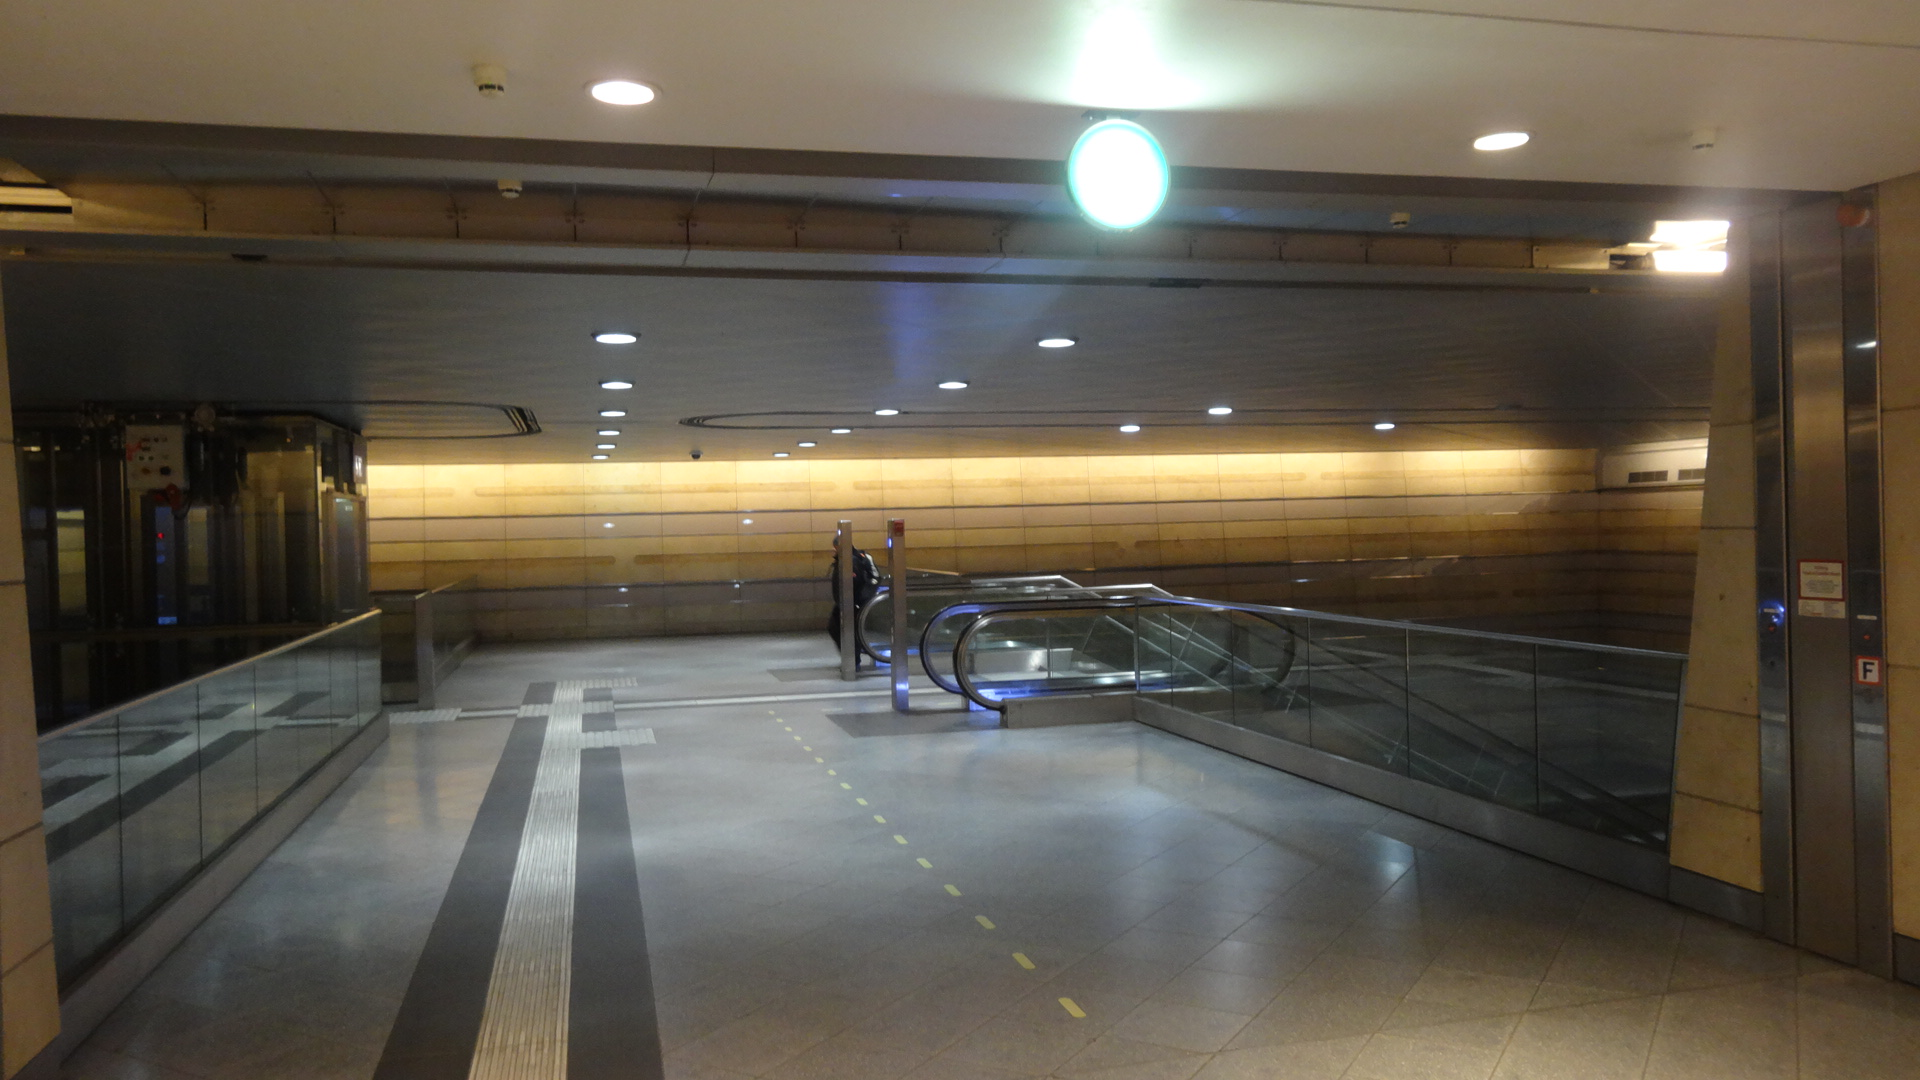 Entrance to City tunnel at Hbf (tief) from Tram side